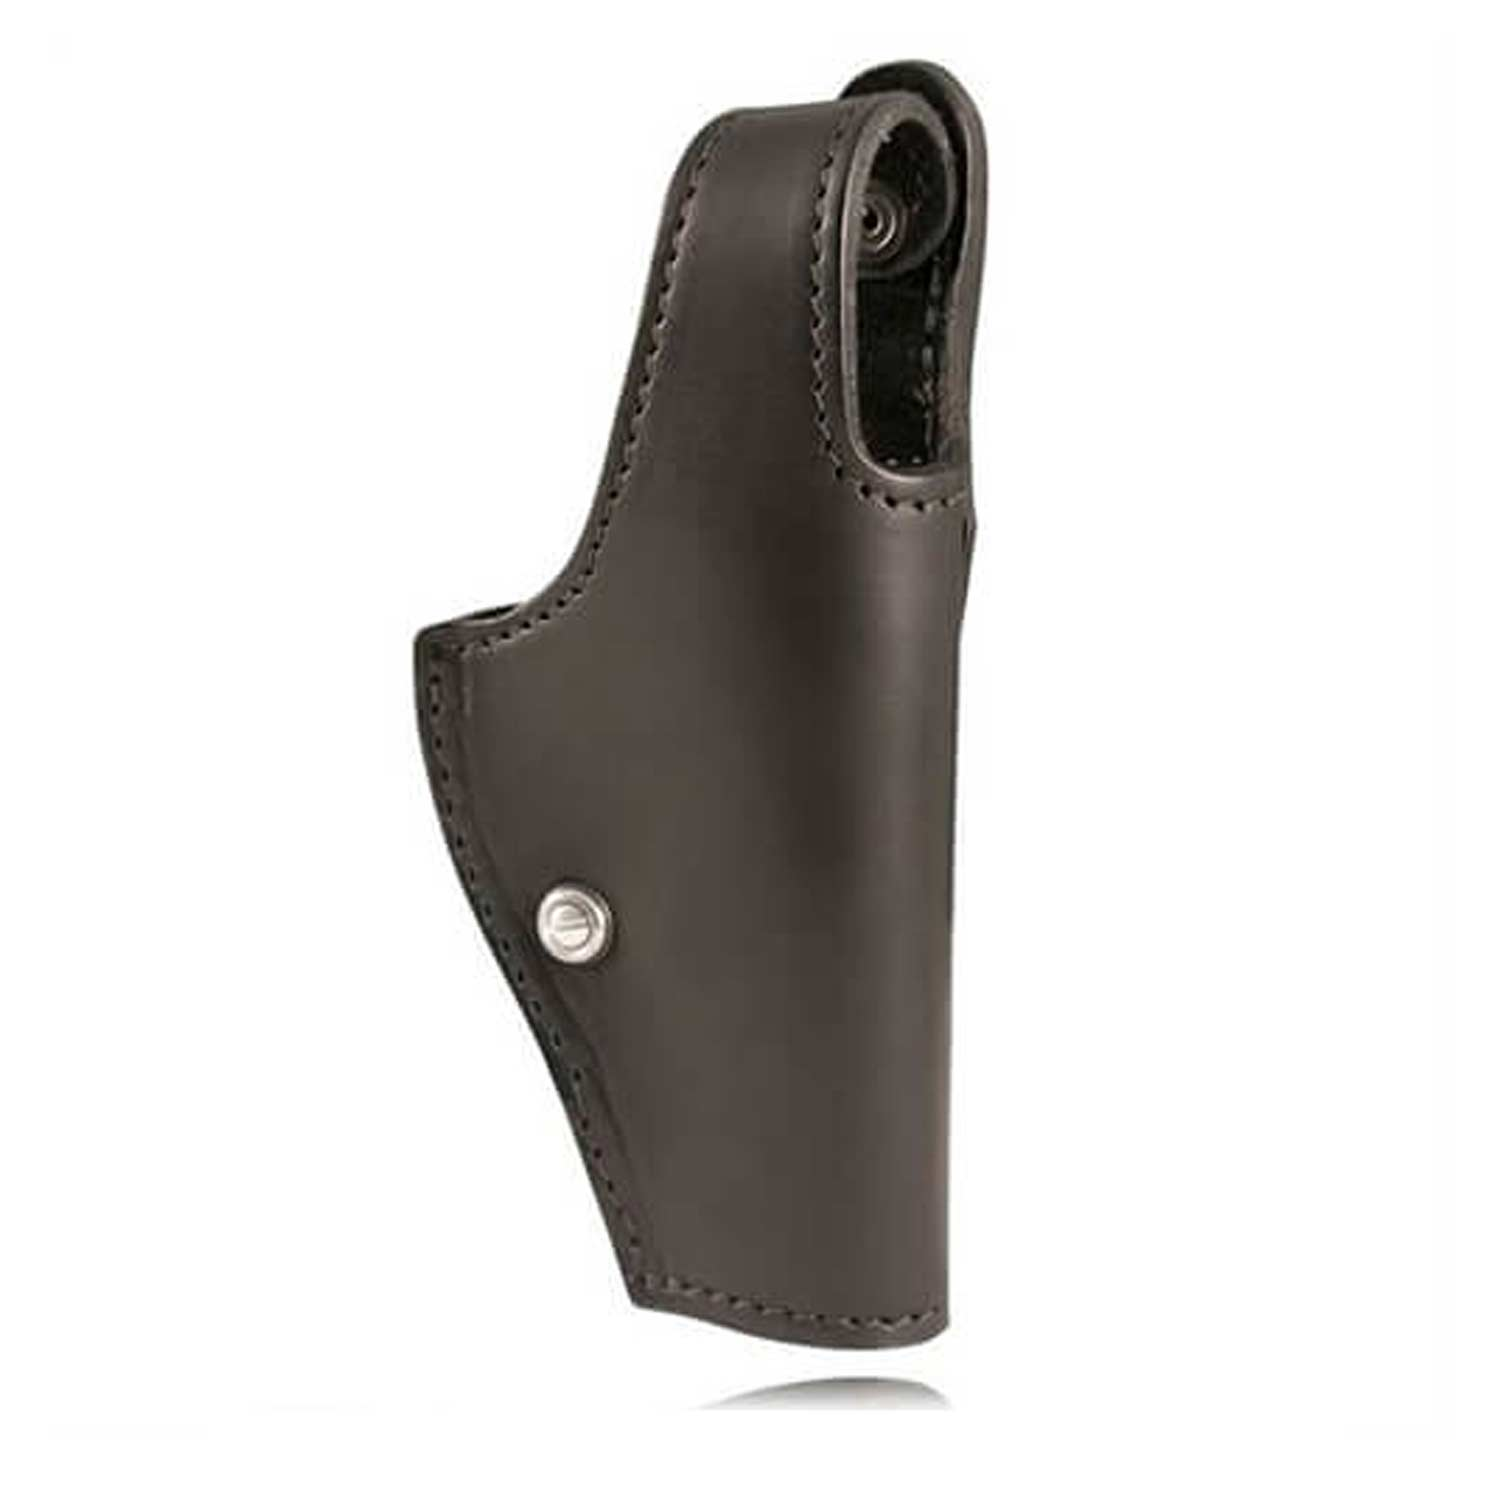 Boston Leather Guardian Hi-Ride Duty Holster